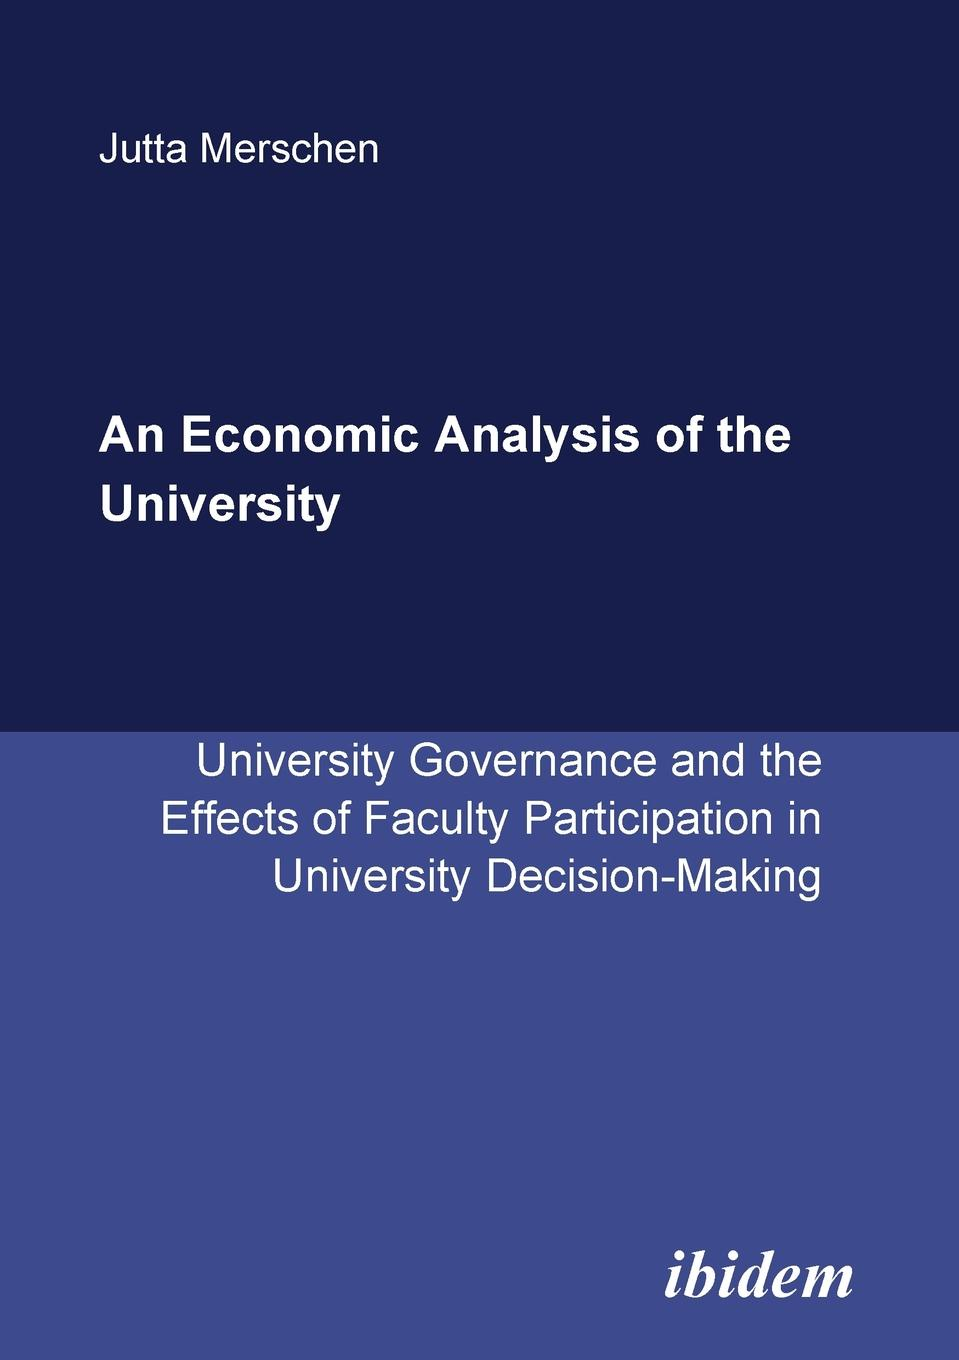 Jutta Merschen An Economic Analysis of the University. University Governance and the Effects of Faculty Participation in University Decision-Making alan johnson recommendations for design and analysis of earth structures using geosynthetic reinforcements ebgeo